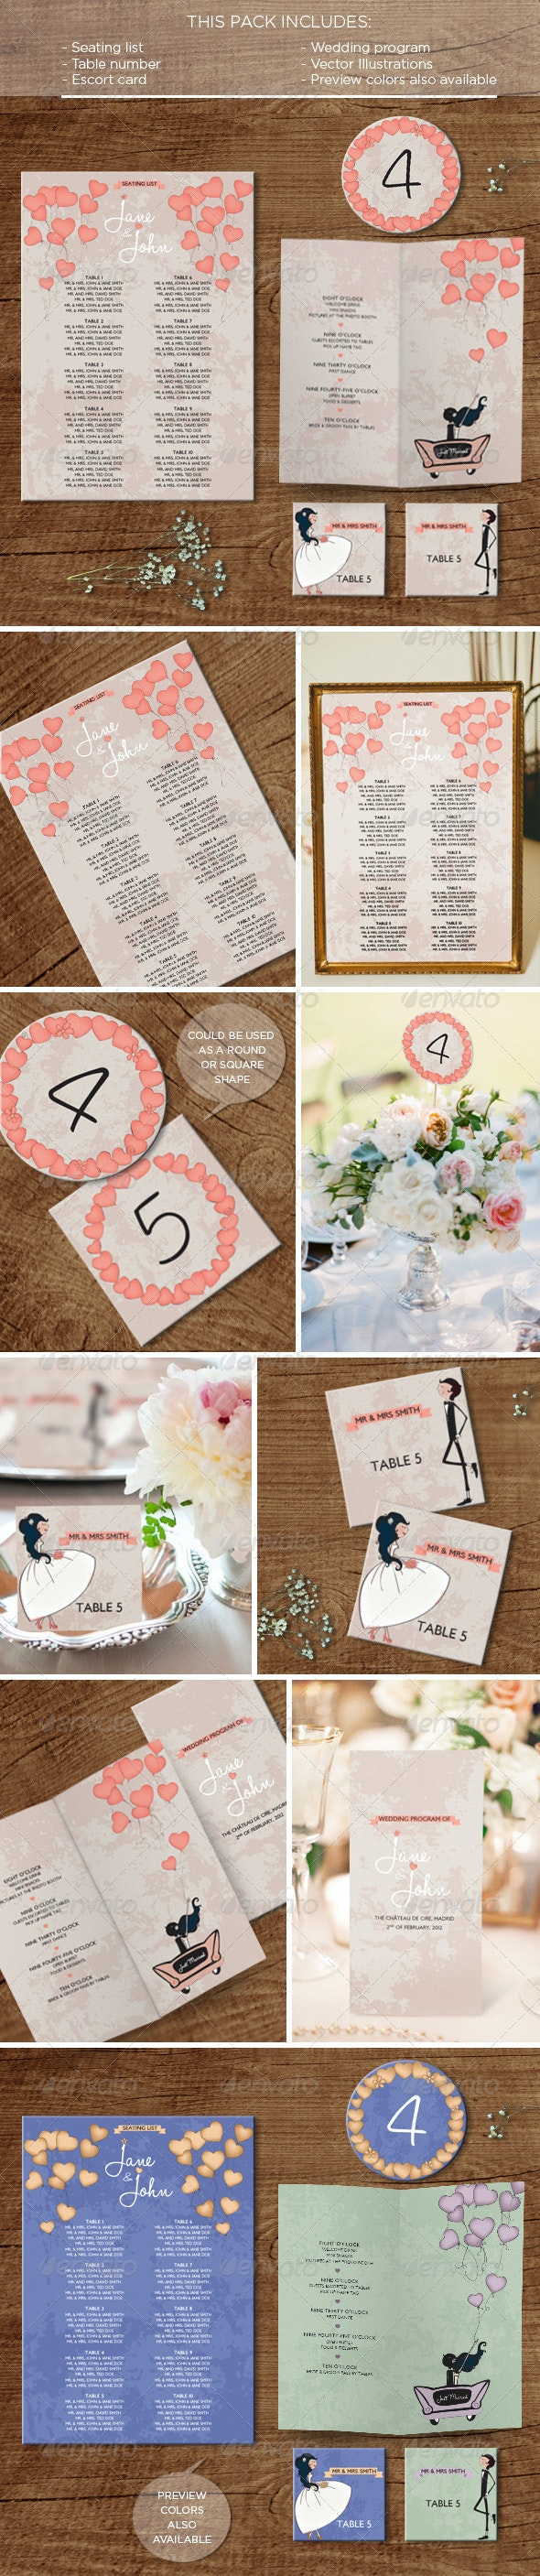 In the Air: Wedding Pack - Weddings Cards & Invites